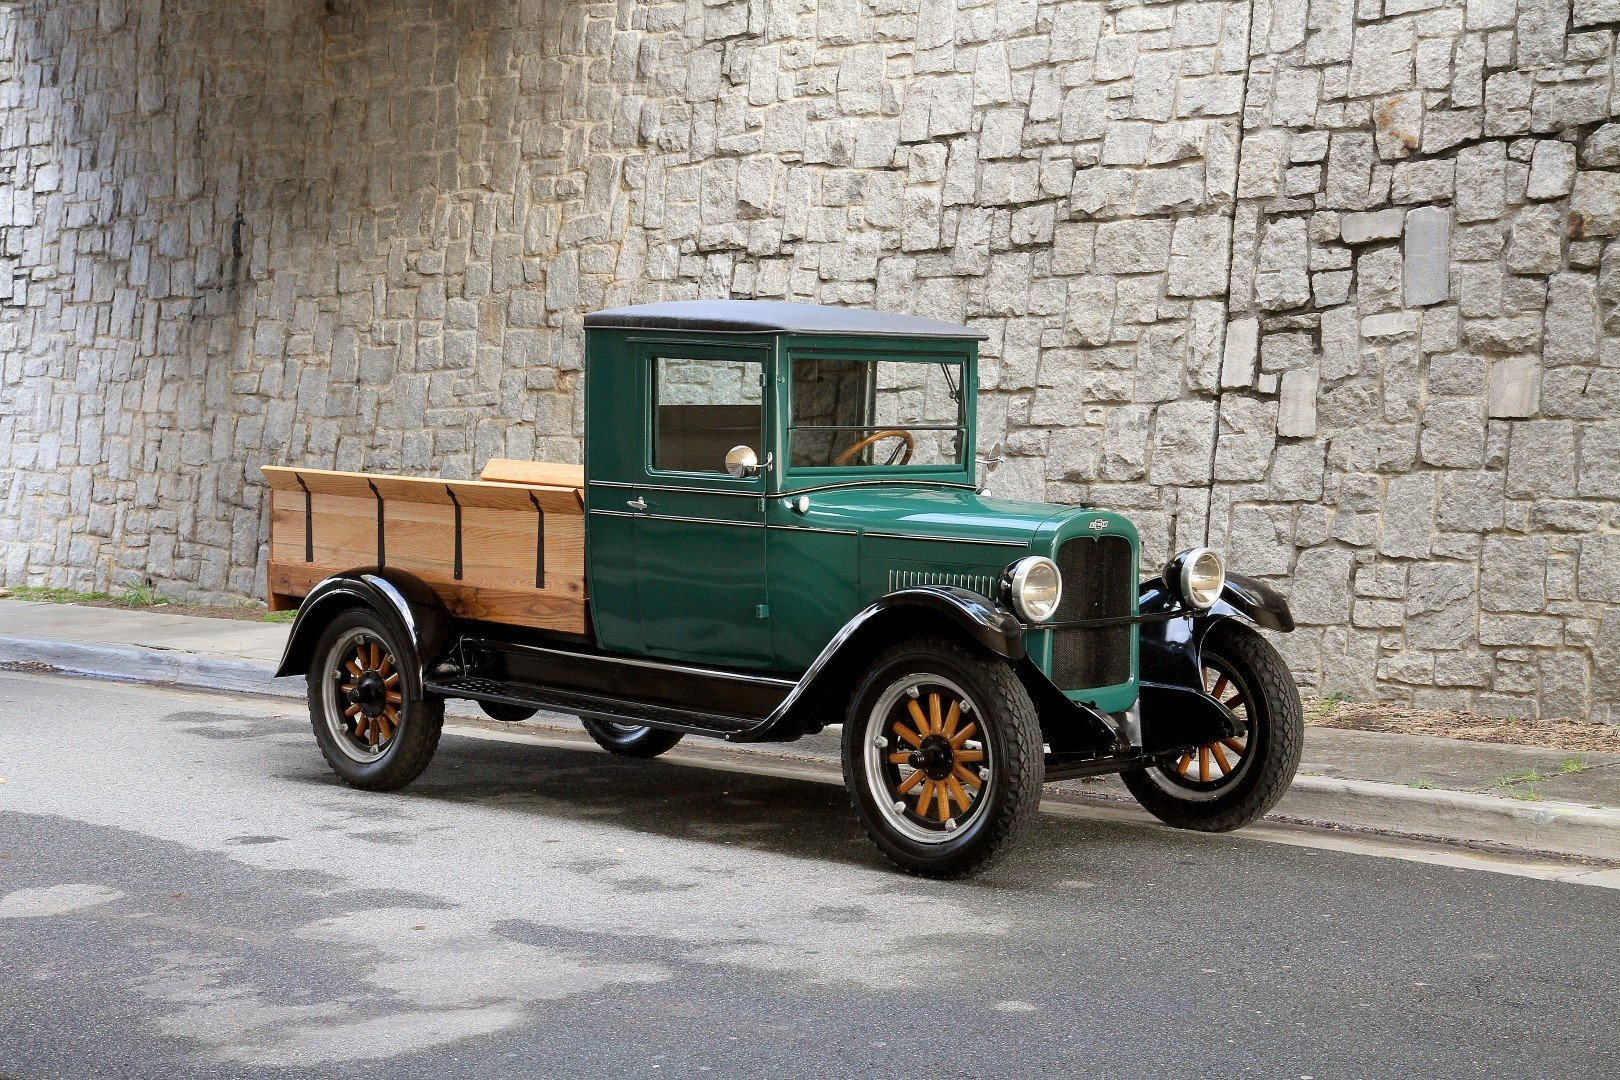 1928 chevrolet capitol pickup truck